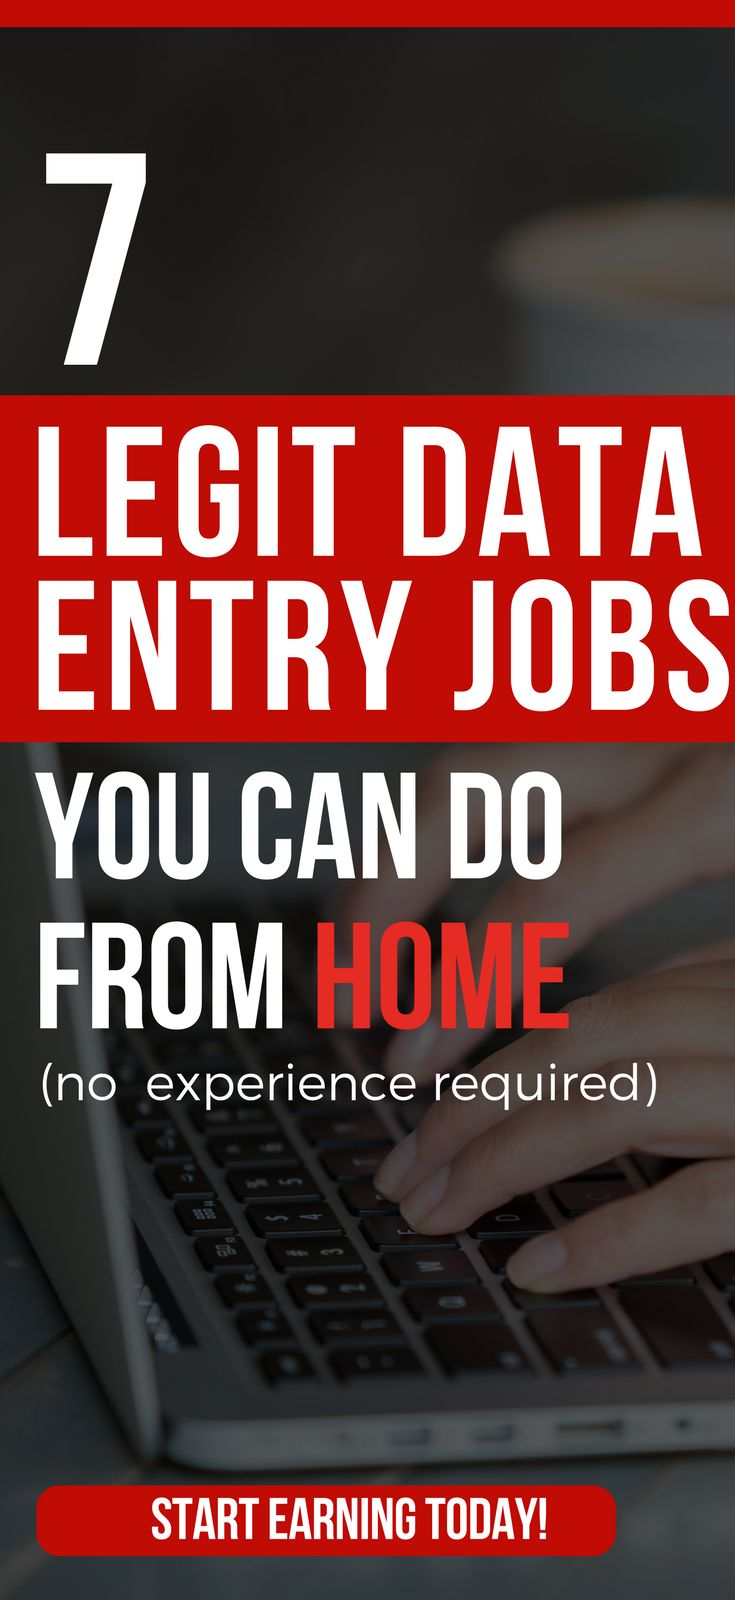 Discover the best online typing jobs you can work from home, without an investment. Get started today with no experience.     data entry jobs from home for beginners   online typing jobs extra money   legit online jobs no experience    #makemoneyonline #makemoney #sidehustles #extracash via @https://www.pinterest.com/thewaystowealth/